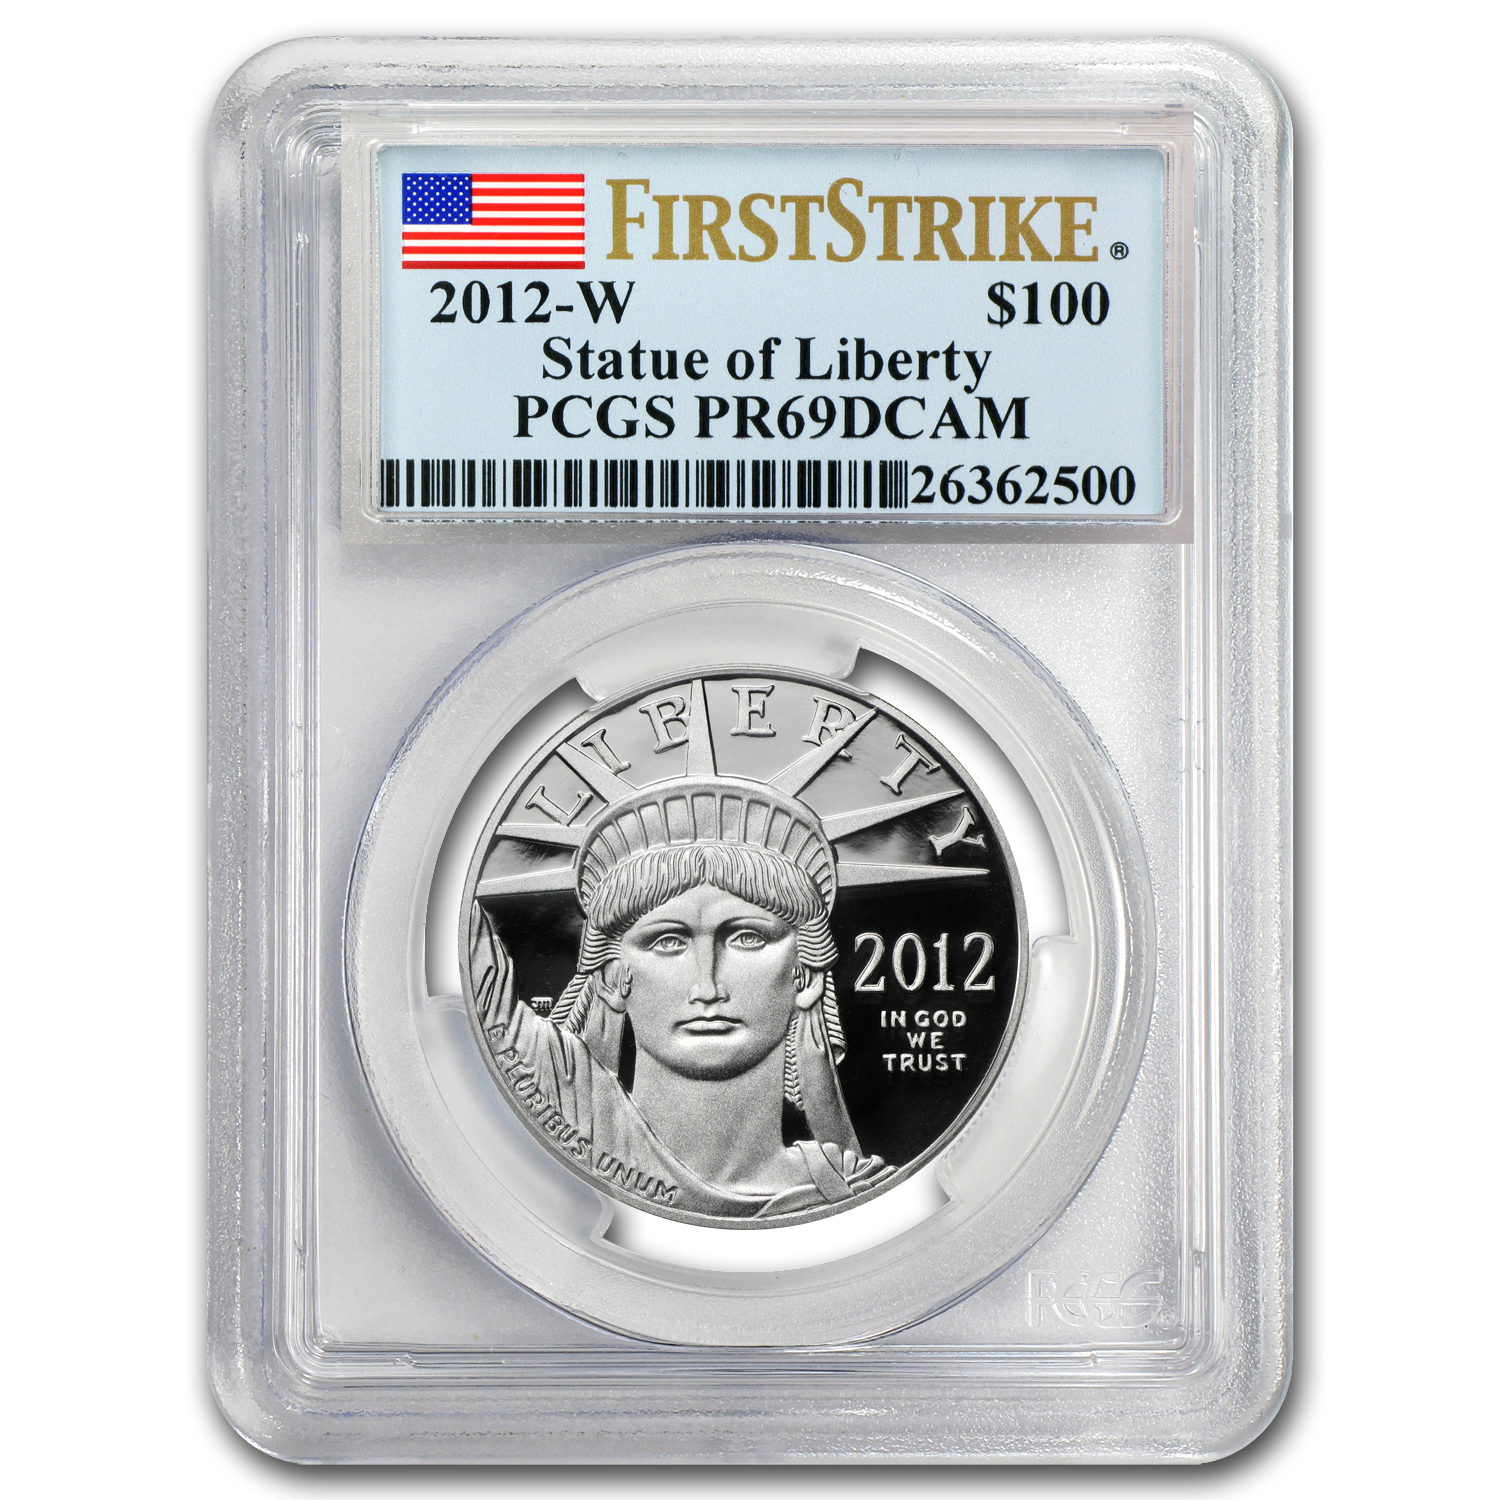 2012-W 1 oz Proof Platinum American Eagle PR-69 PCGS First Strike